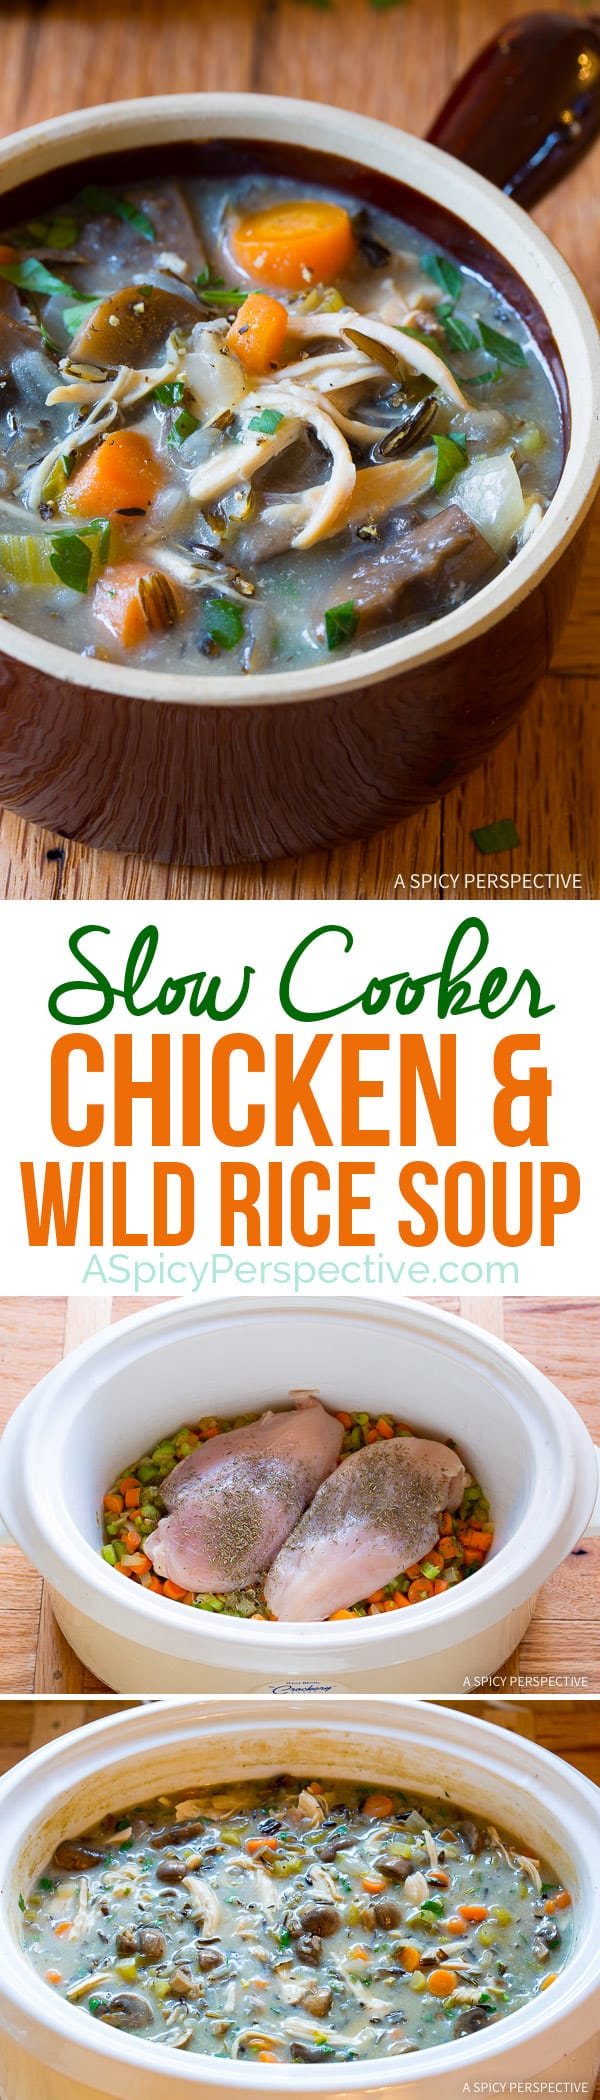 Perfect for January Diets! Healthy Slow Cooker Chicken Wild Rice Soup (Low Fat, Gluten Free, Dairy Free) | ASpicyPerspective.com